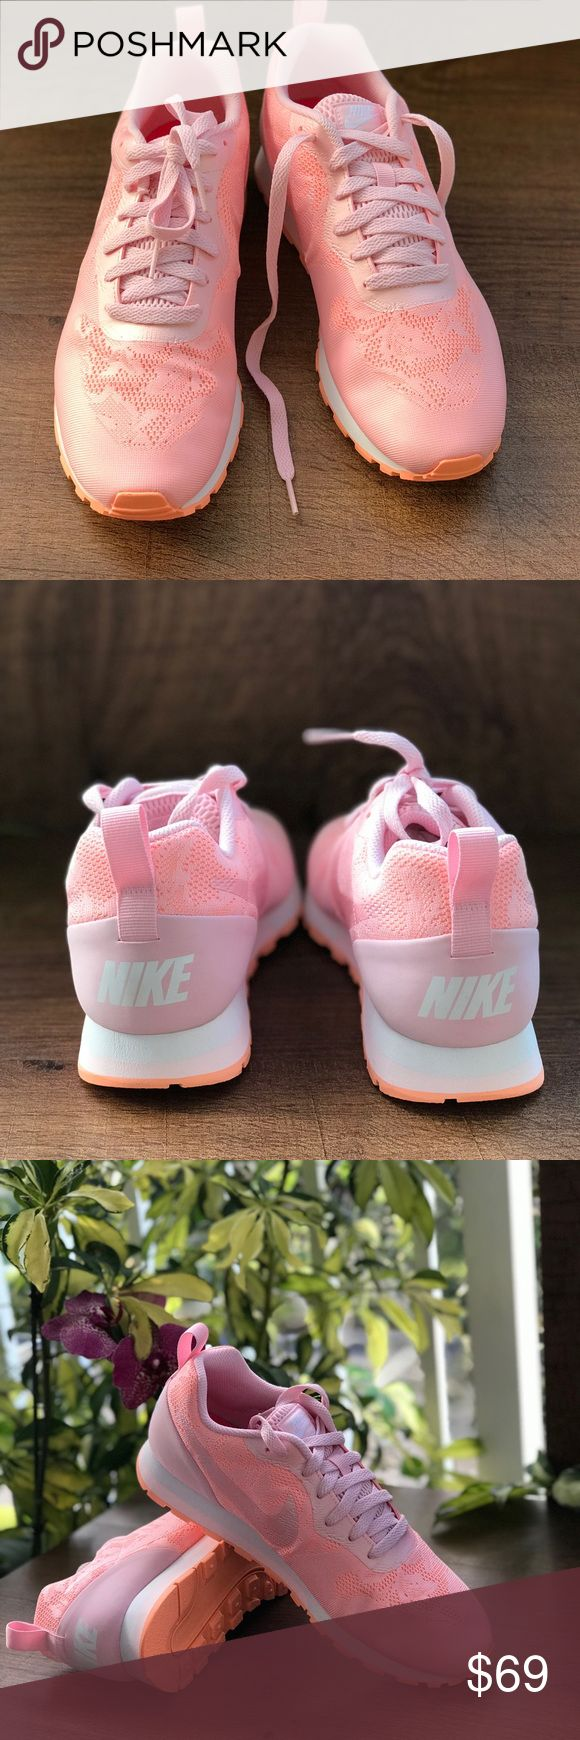 NWT Nike MD Runner 2 BR WMNS Brand new with no lid box. Price is firm! No trades. Nike Shoes Sneakers